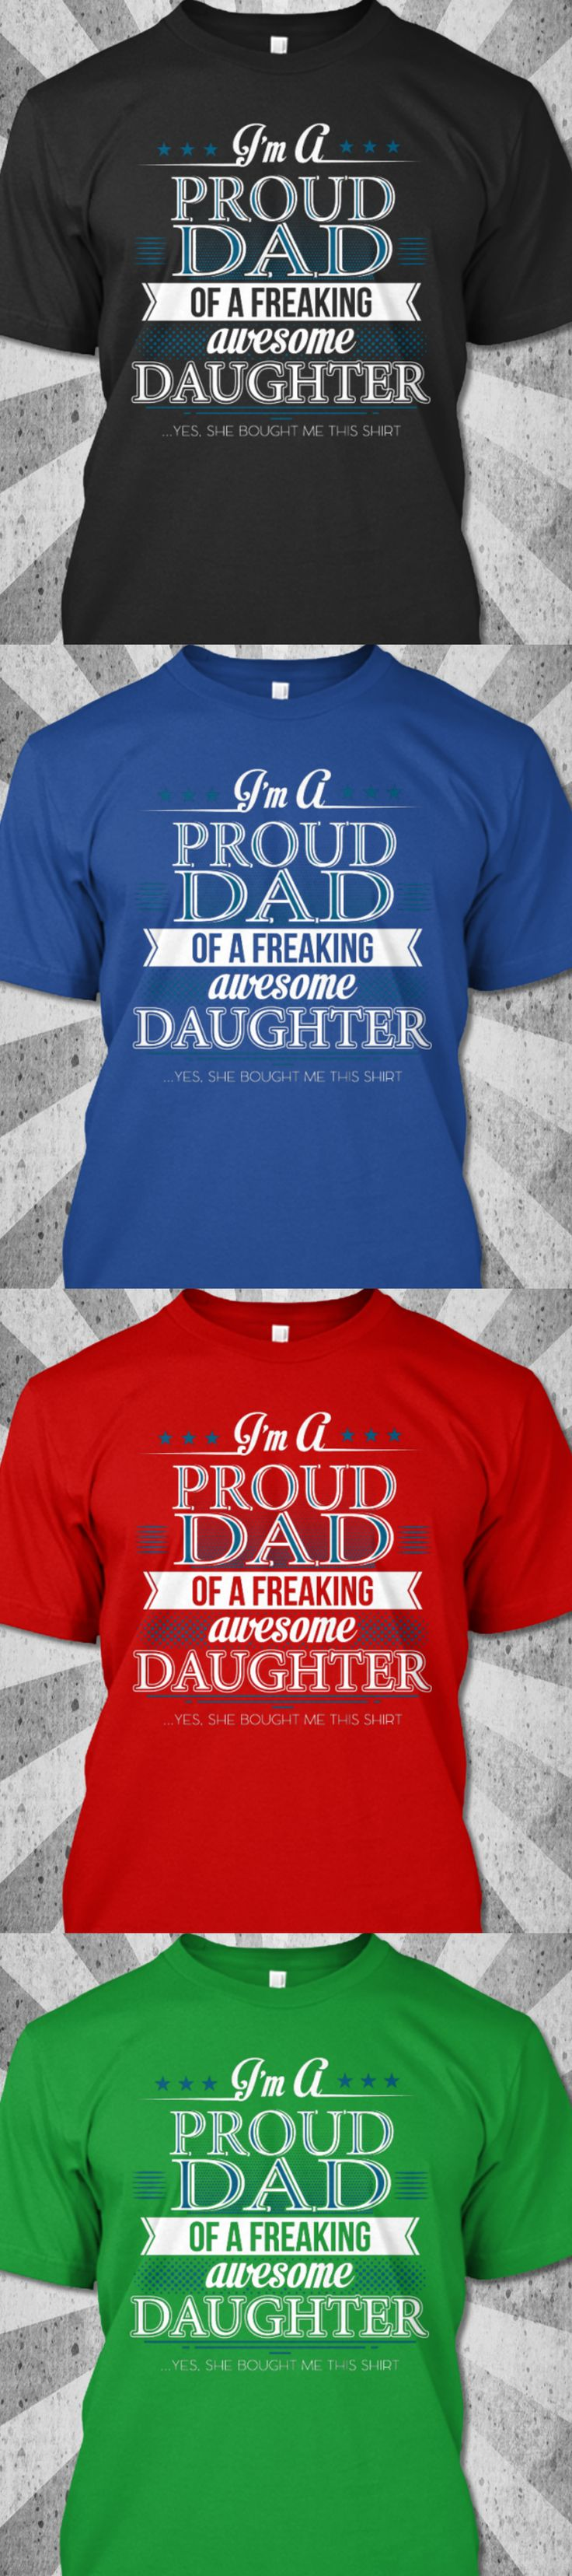 Free Shipping this week only! Get the perfect gift for Father's Day!